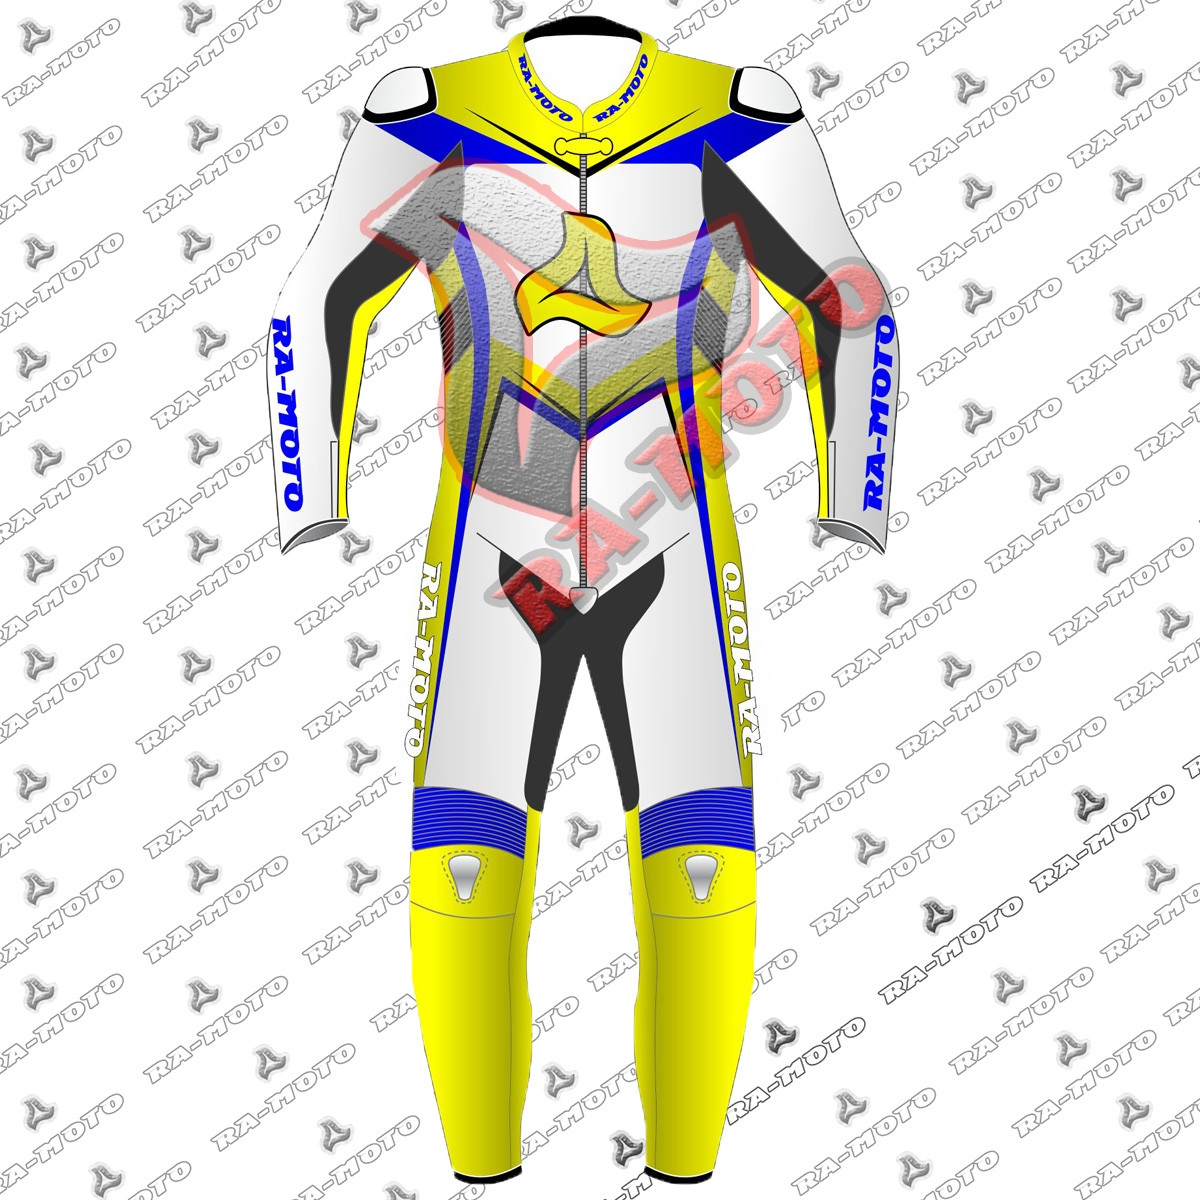 RA-15291 M51 SuperMoto leather racing suit